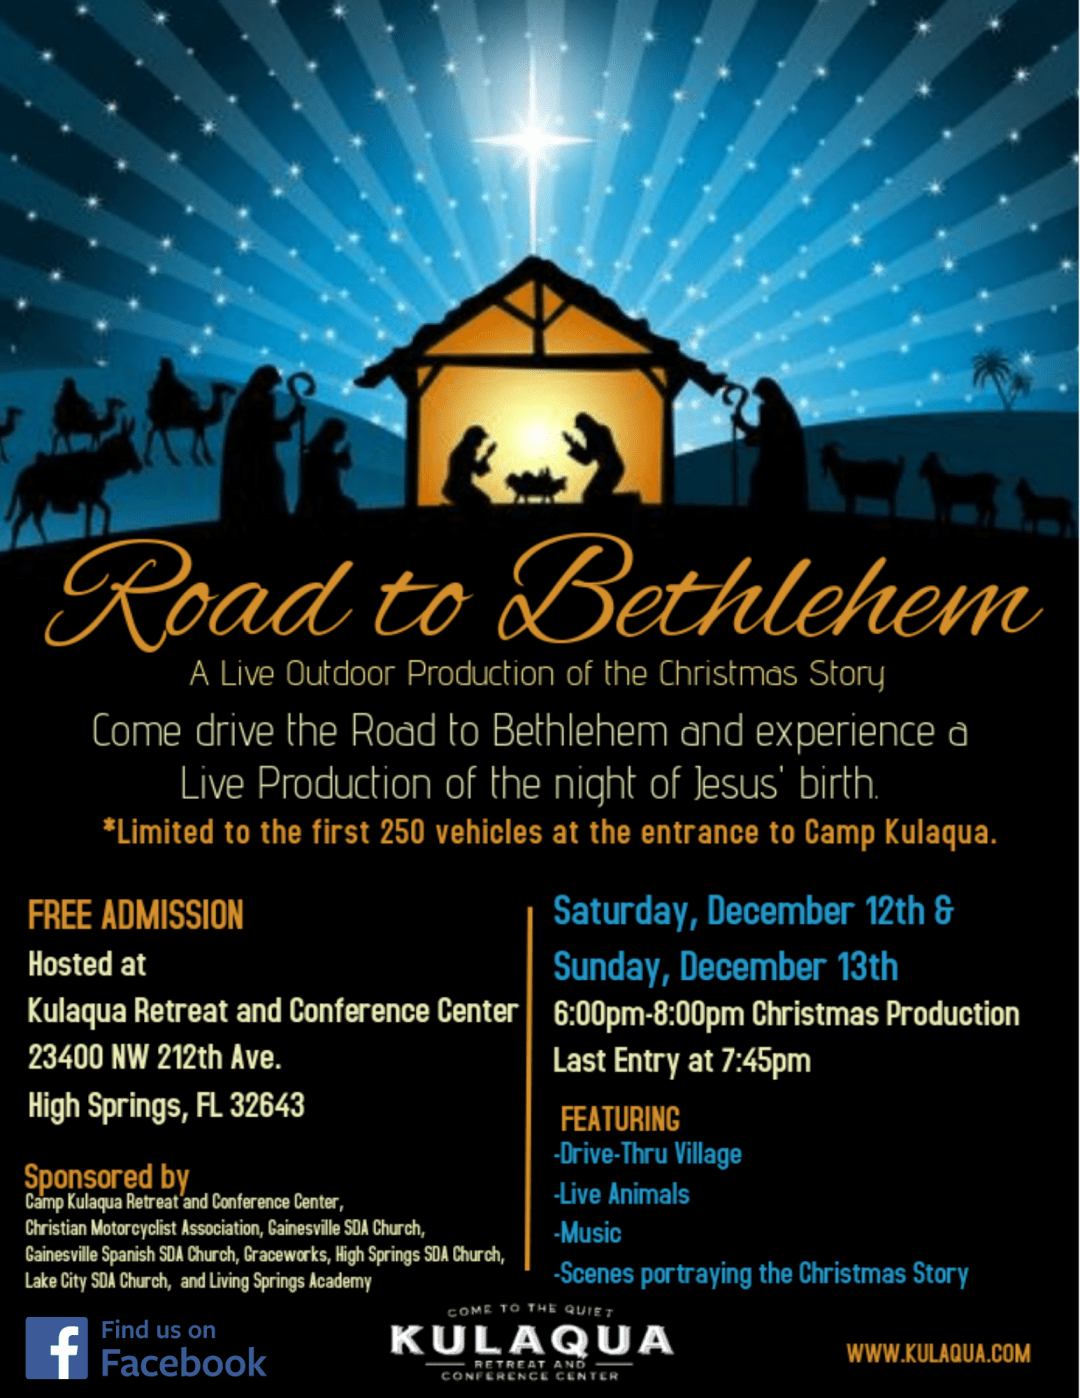 2020 Road to Bethlehem Flyer Kulaqua Retreat and Conference Center